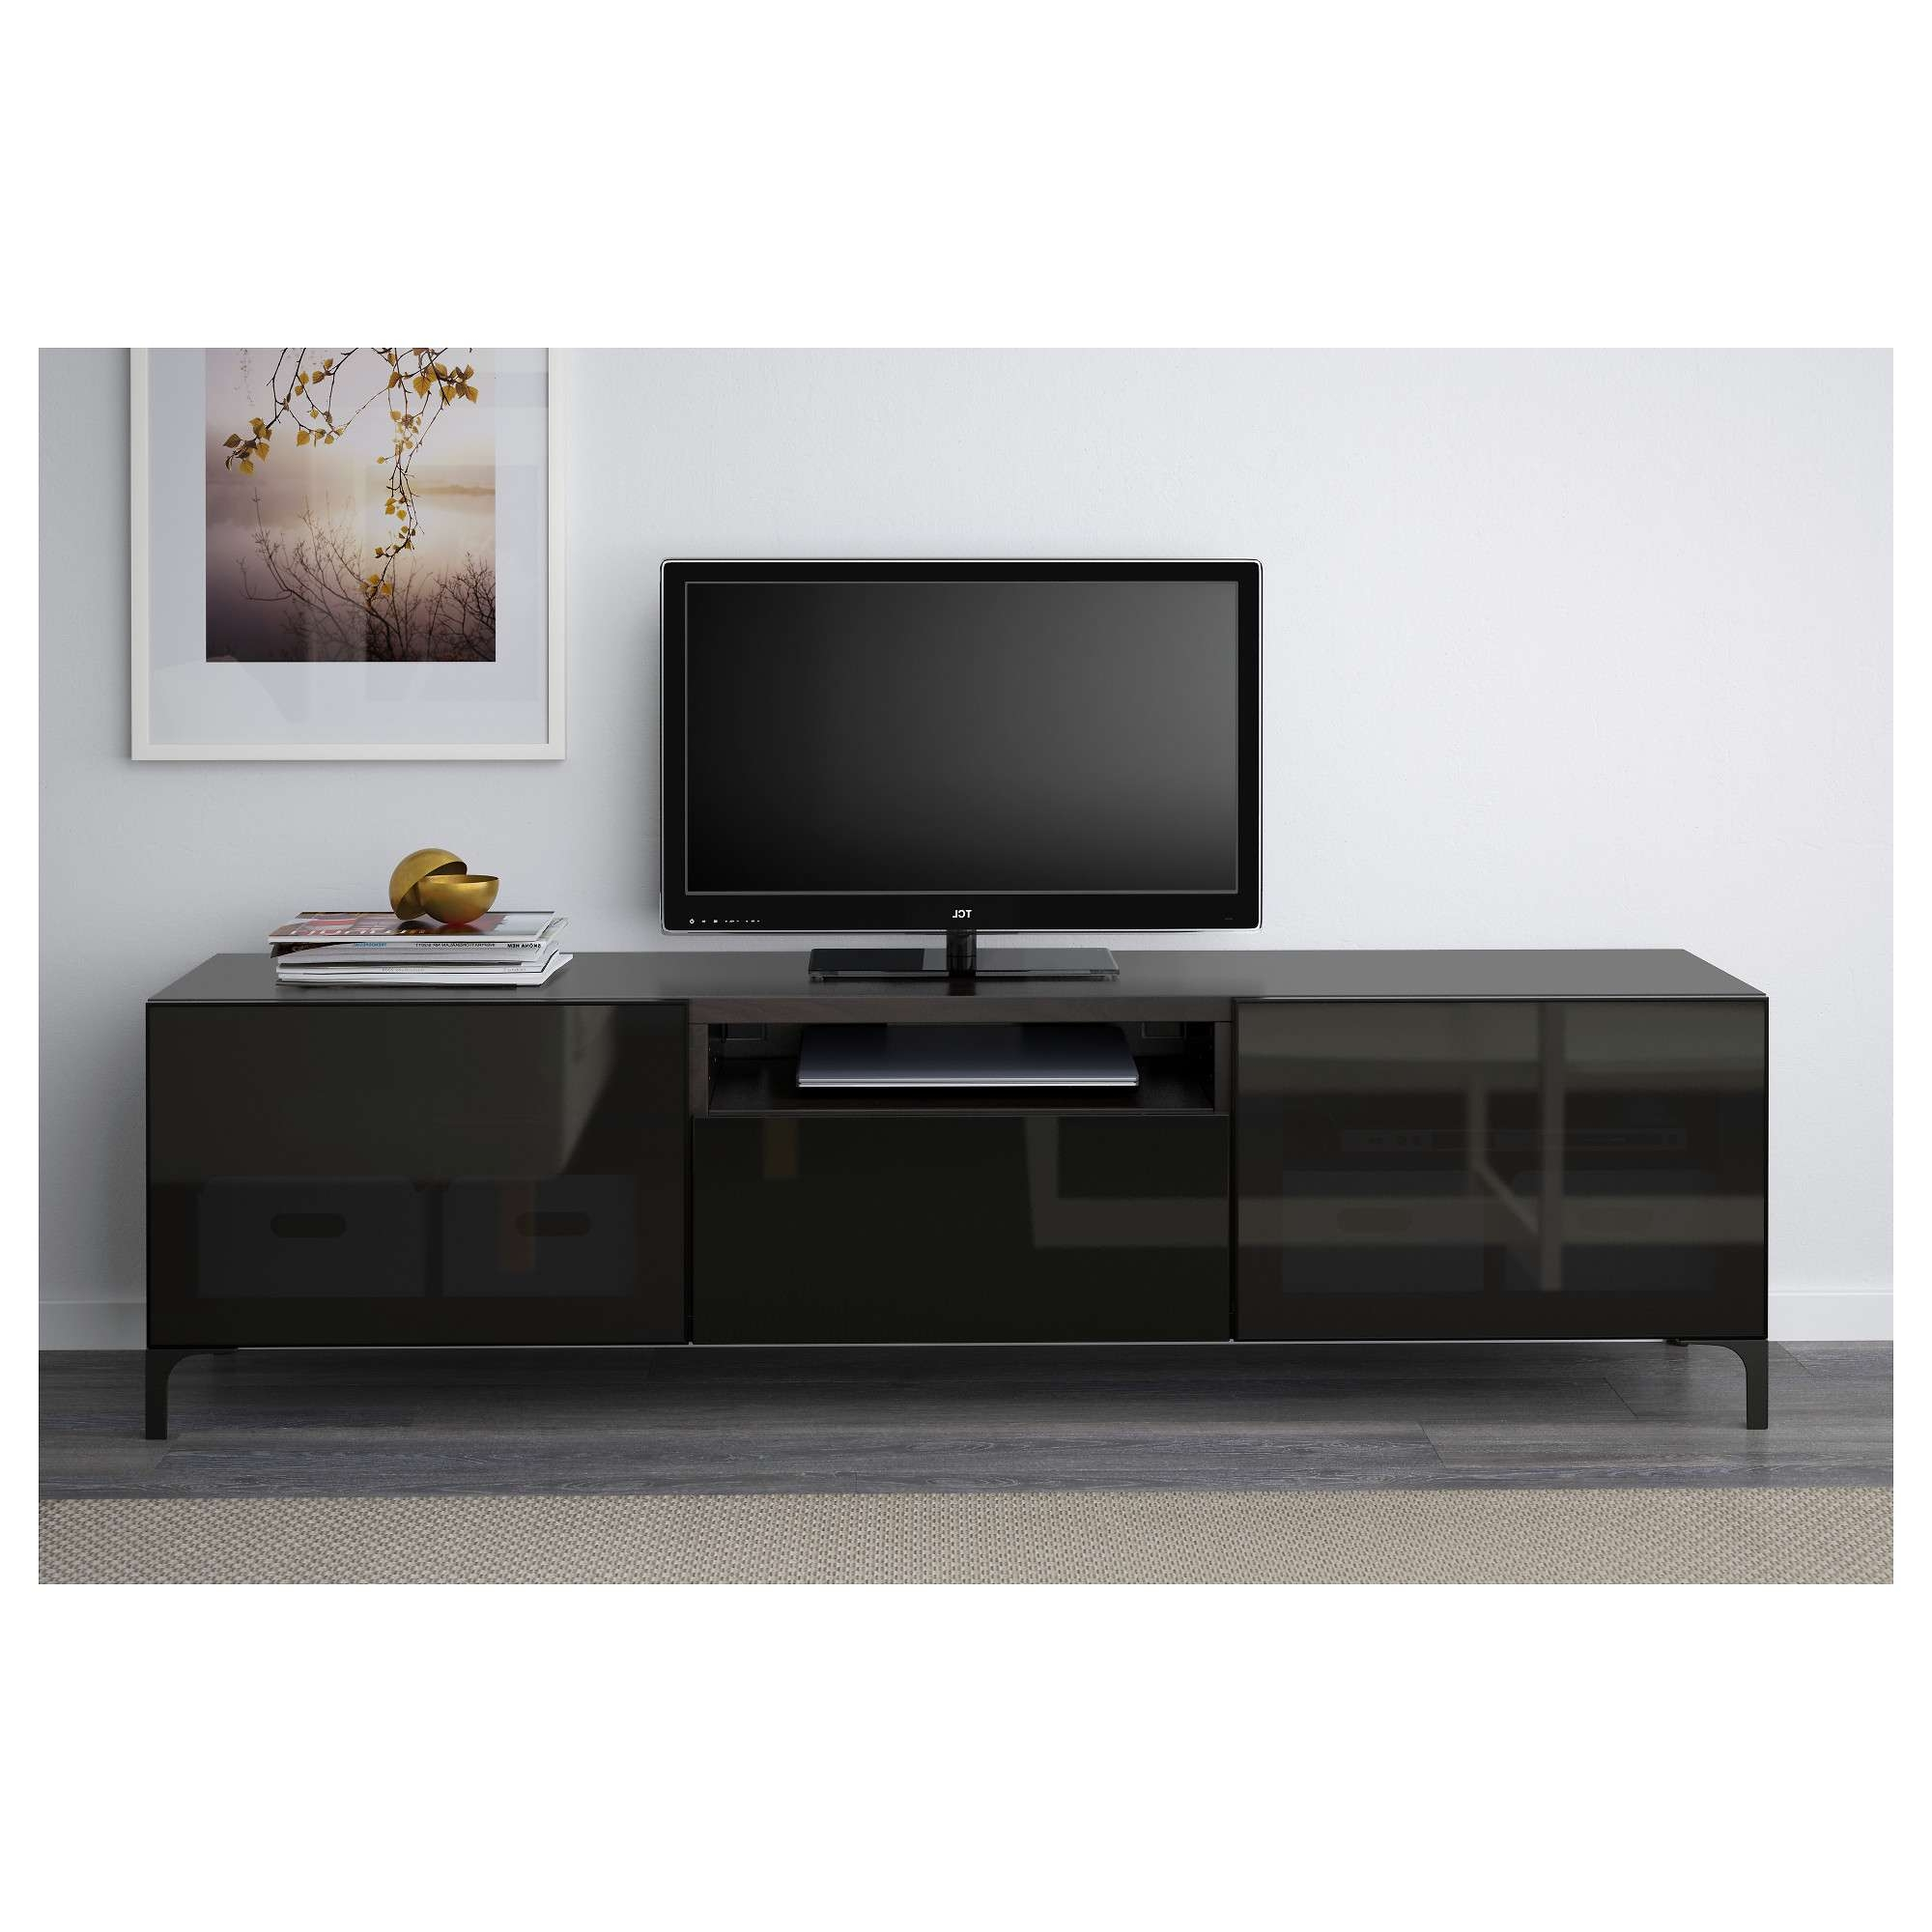 Bestå Tv Bench – Black Brown/selsviken High Gloss/black Clear Regarding Tv Cabinets Black High Gloss (View 1 of 20)